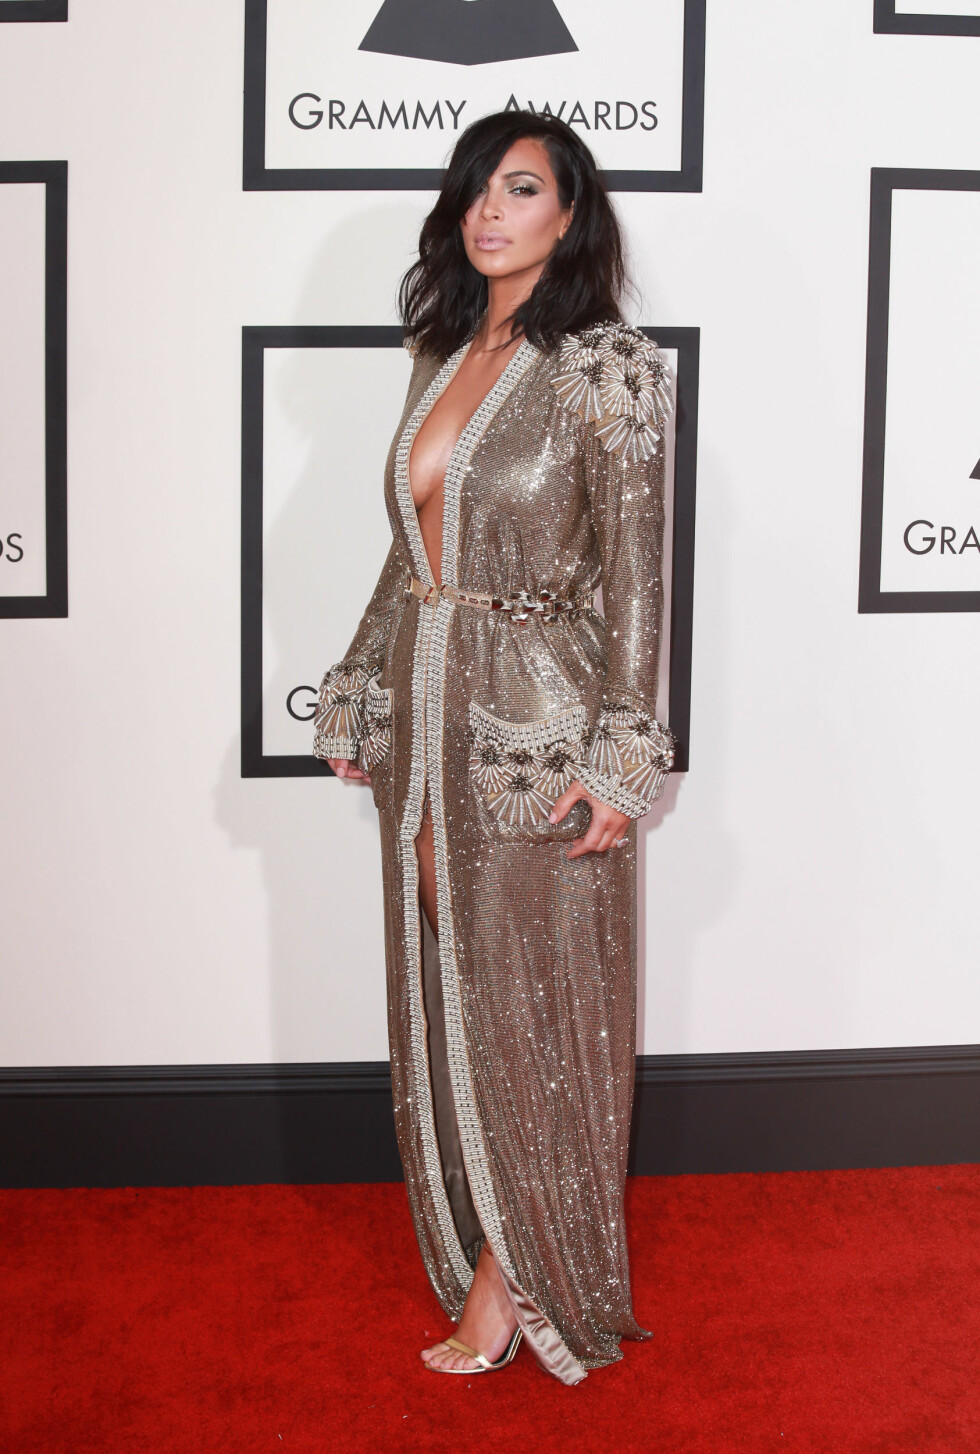 The 57th Annual Grammy Awards red carpet on February 8, 2015 in Los Angeles, California.  Pictured: Kim Kardashian Ref: SPL945806  080215   Picture by: Splash News  Splash News and Pictures Los Angeles:	310-821-2666 New York:	212-619-2666 London:	870-934-2666 photodesk@splashnews.com  Foto: Splash News/ All Over Press